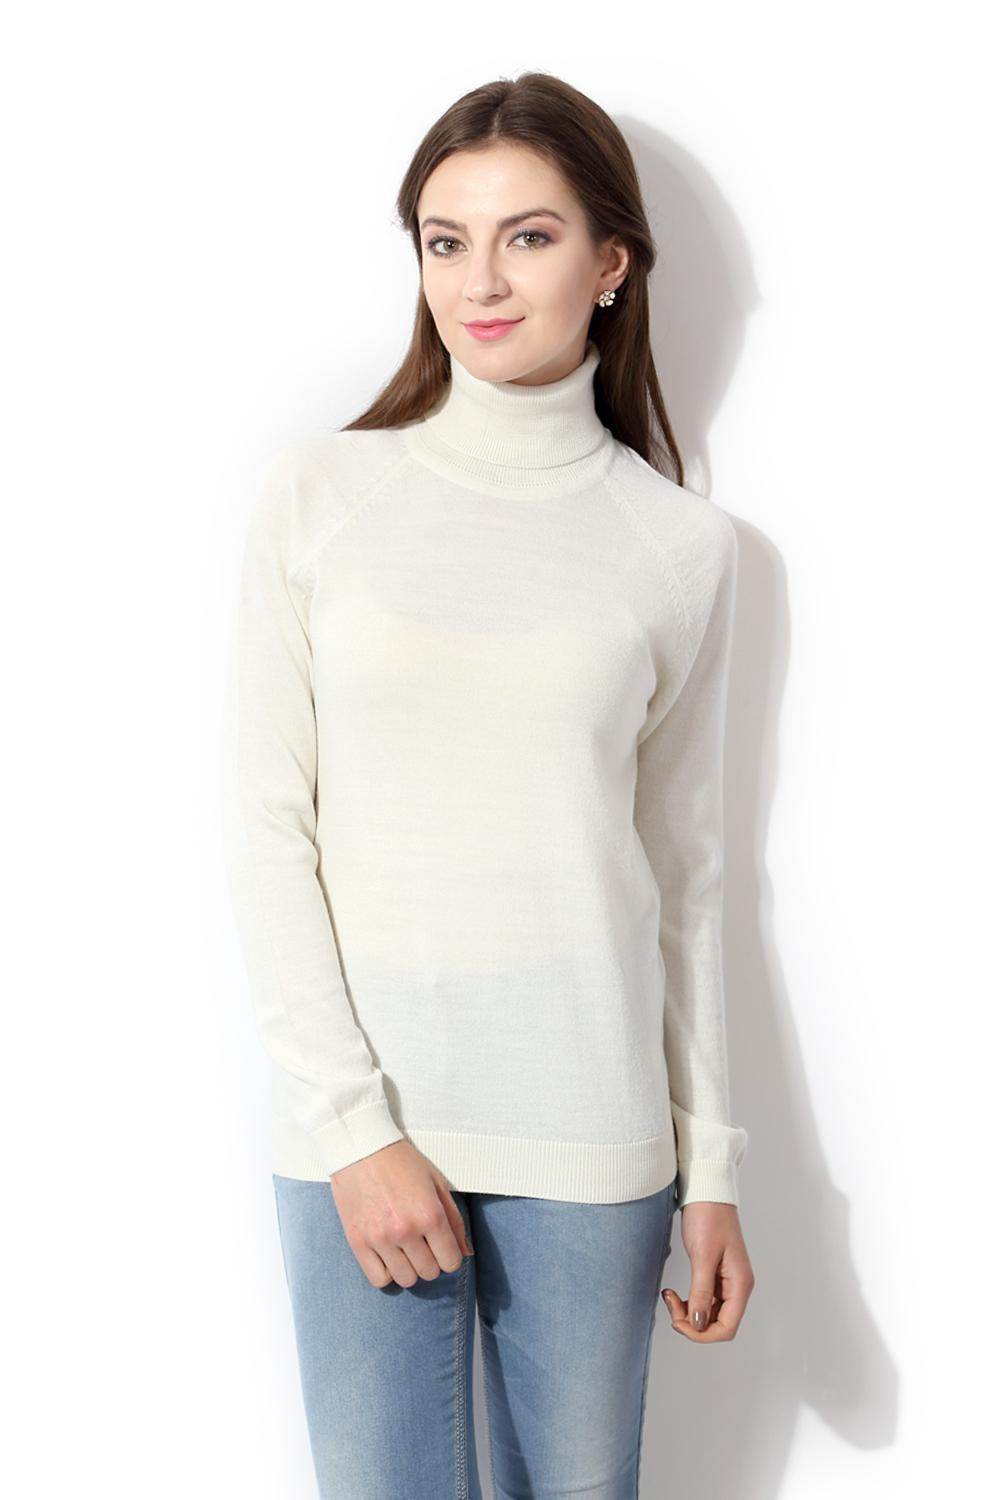 b09b4d4cbff9 Solly Sweaters & Cardigans, Allen Solly White Sweater for Women at  Allensolly.com